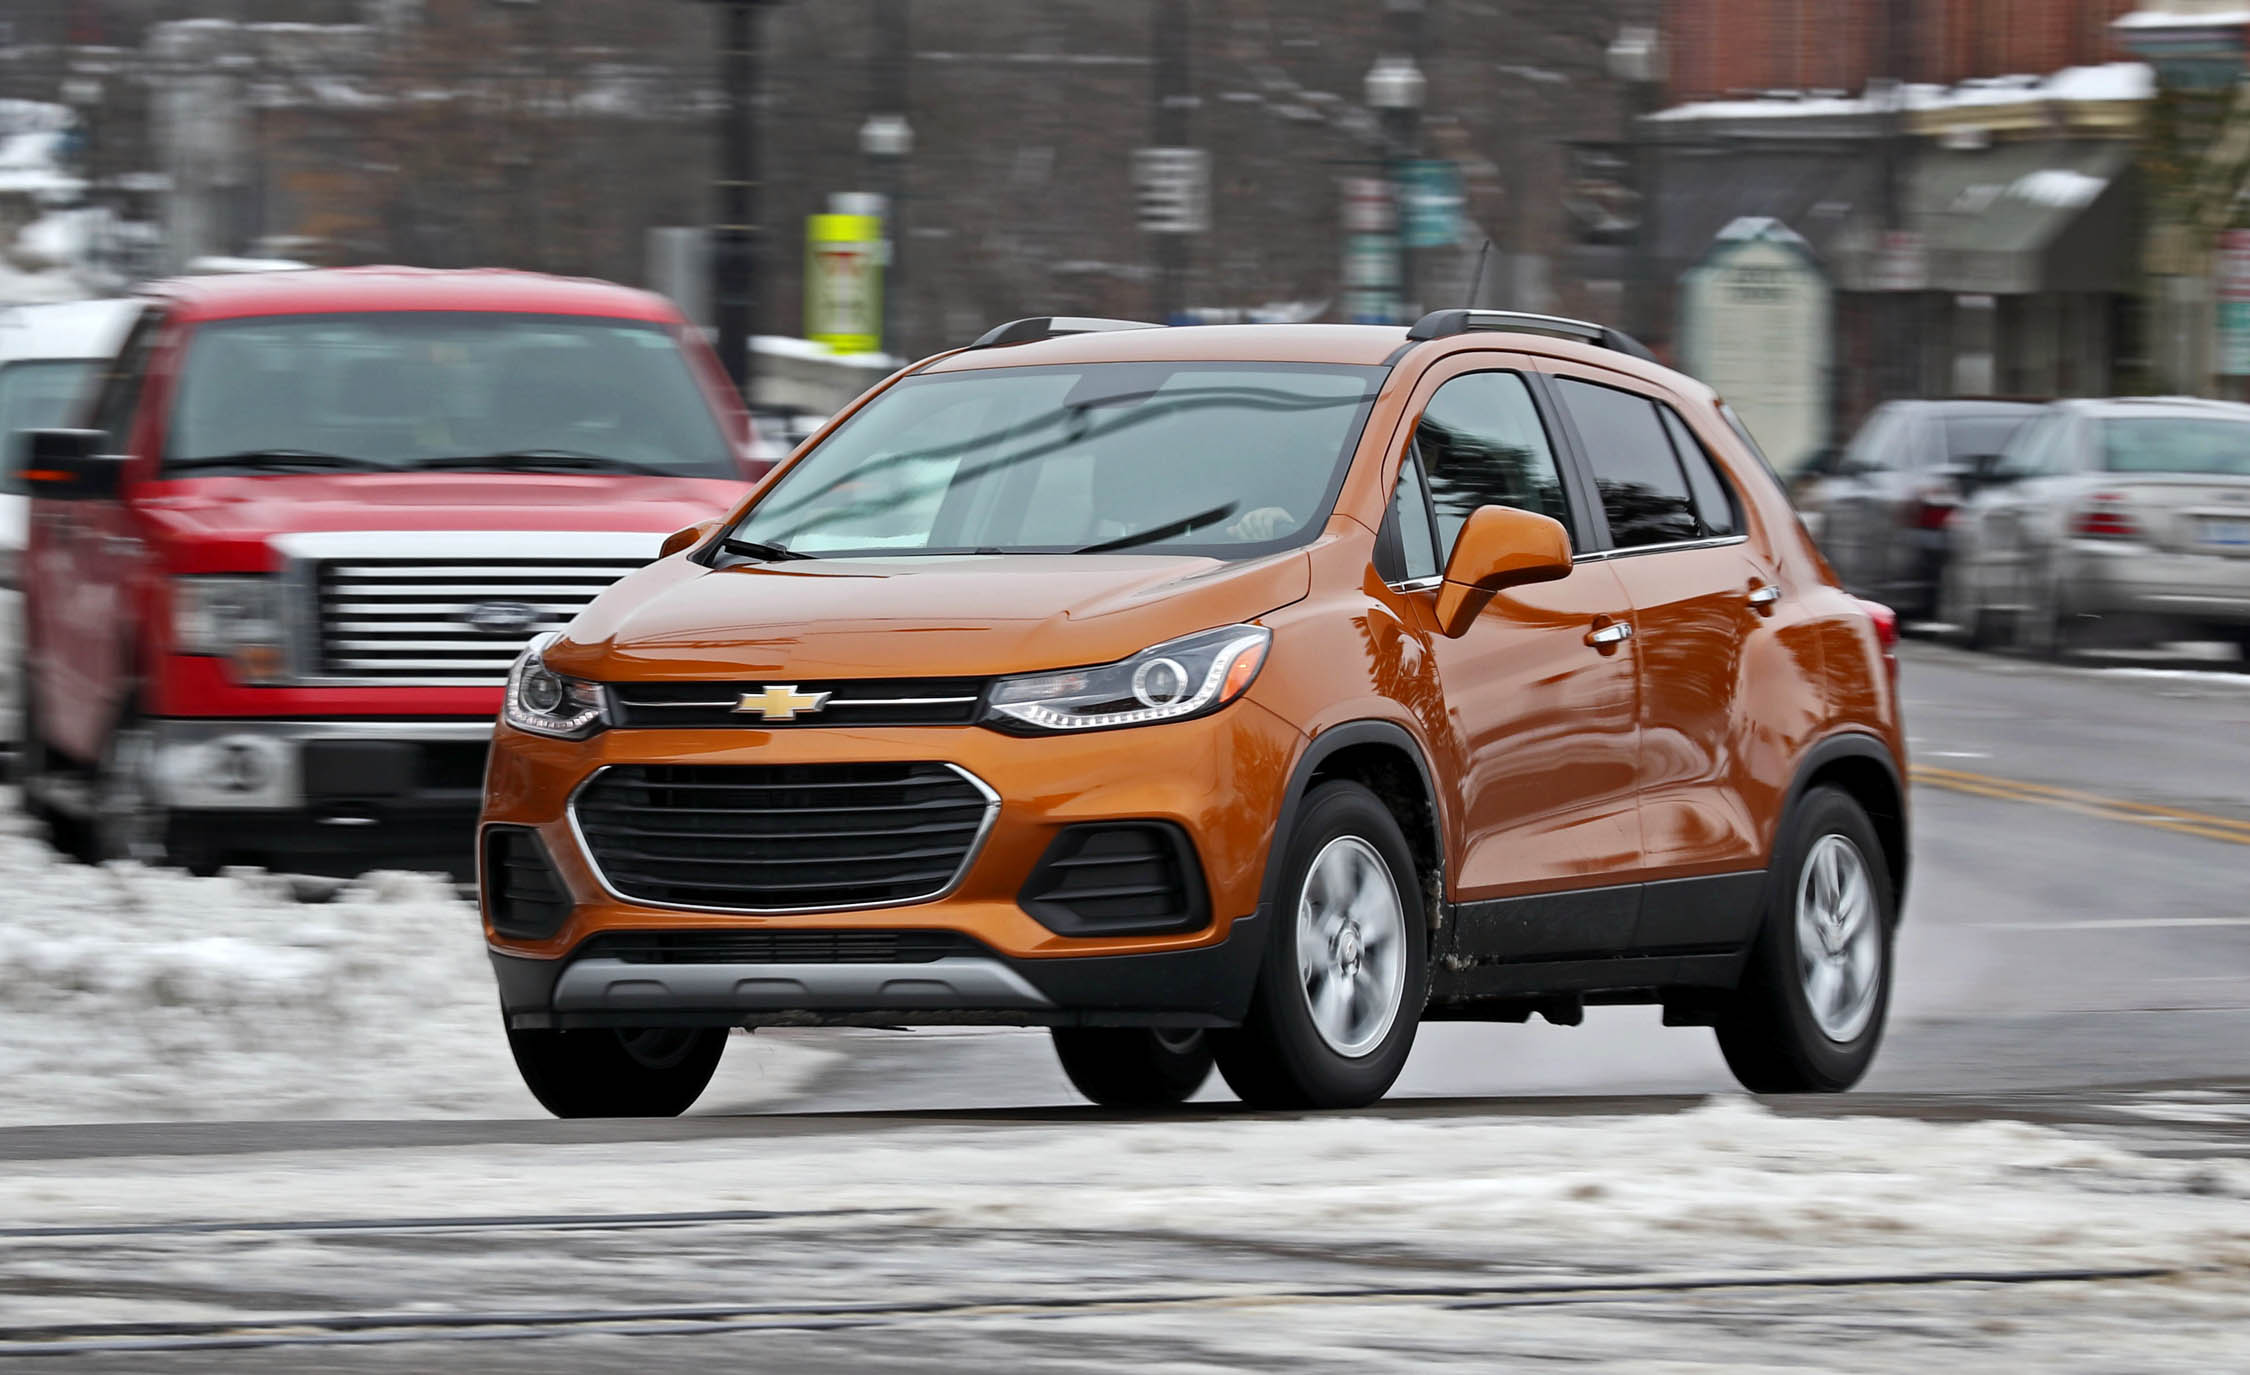 2017 Chevrolet Trax Test Drive (Photo 35 of 47)